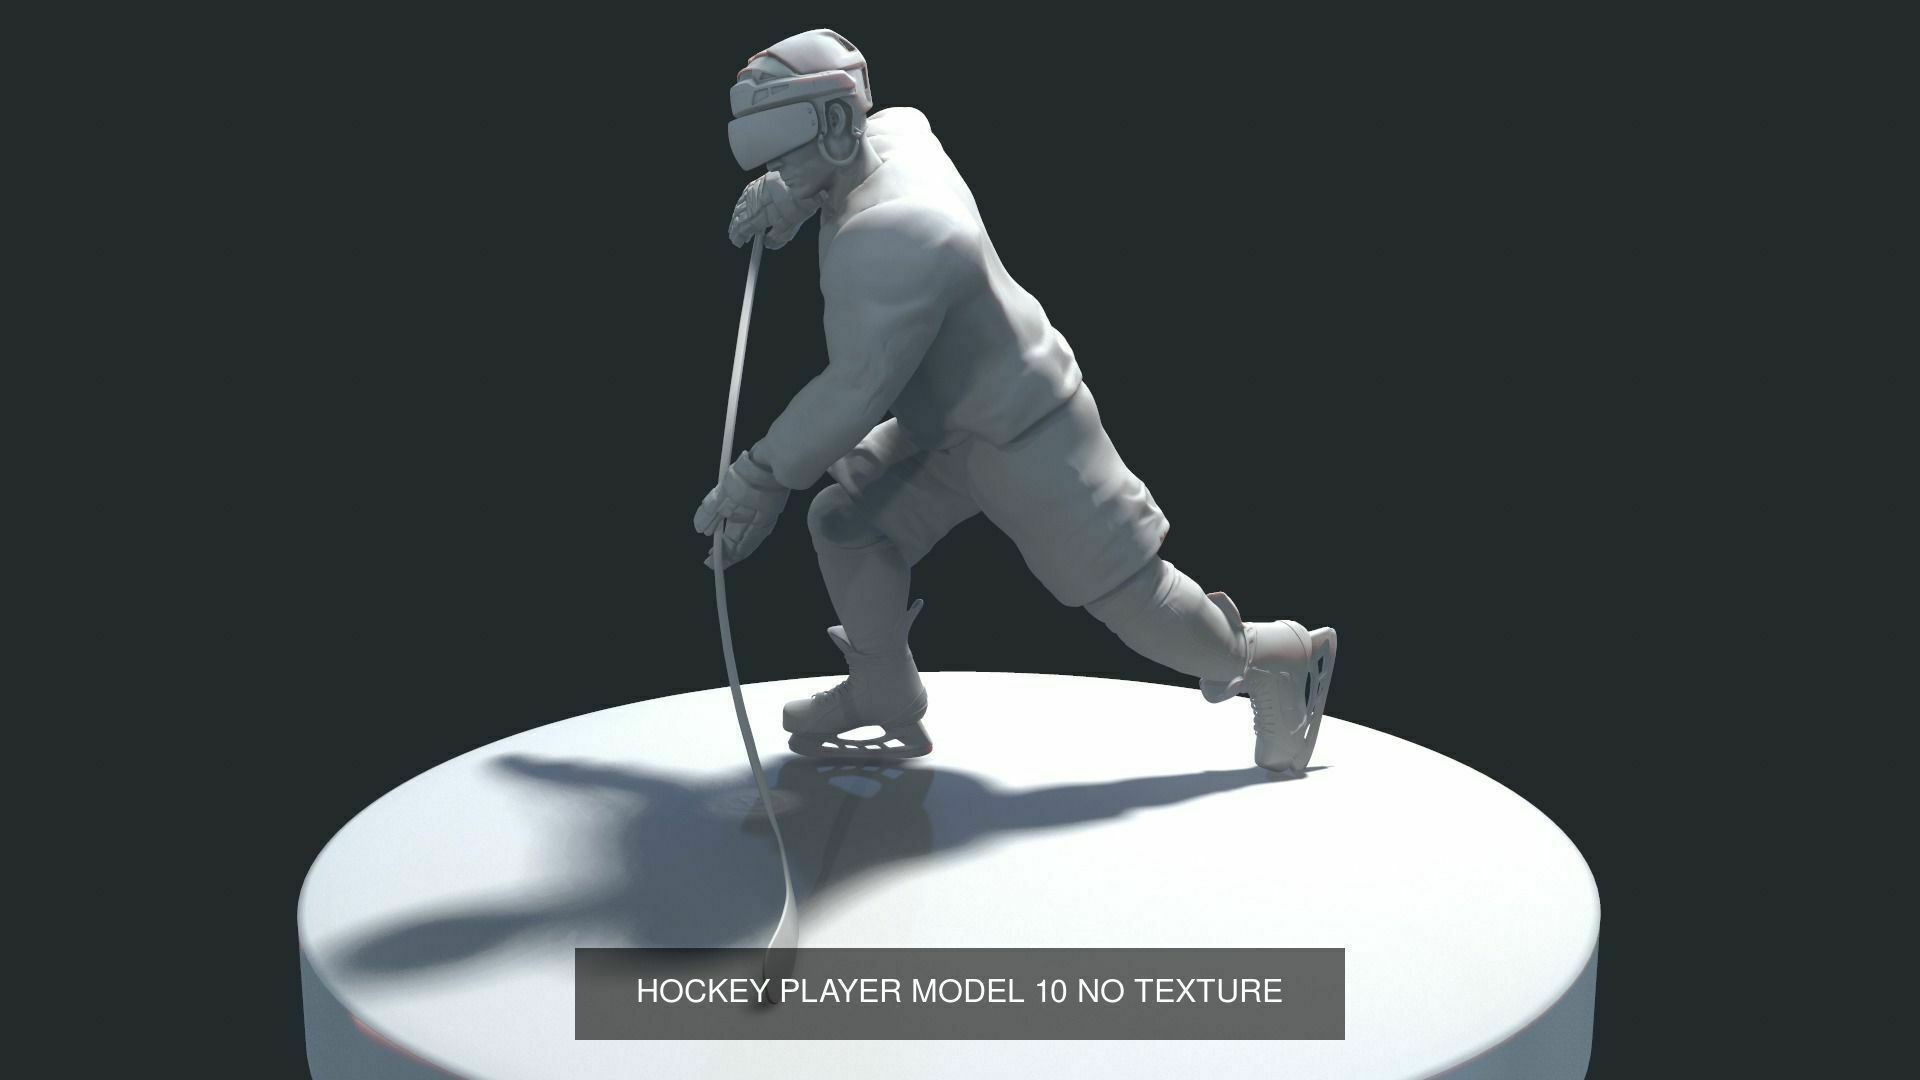 ultimate-hockey-poses-pack-model-no-texture-3d-model-max-obj-fbx-stl-tbscene (22).jpg Download OBJ file ULTIMATE HOCKEY POSES PACK MODEL NO TEXTURE 3D Model Collection • 3D printing template, NightCreativity